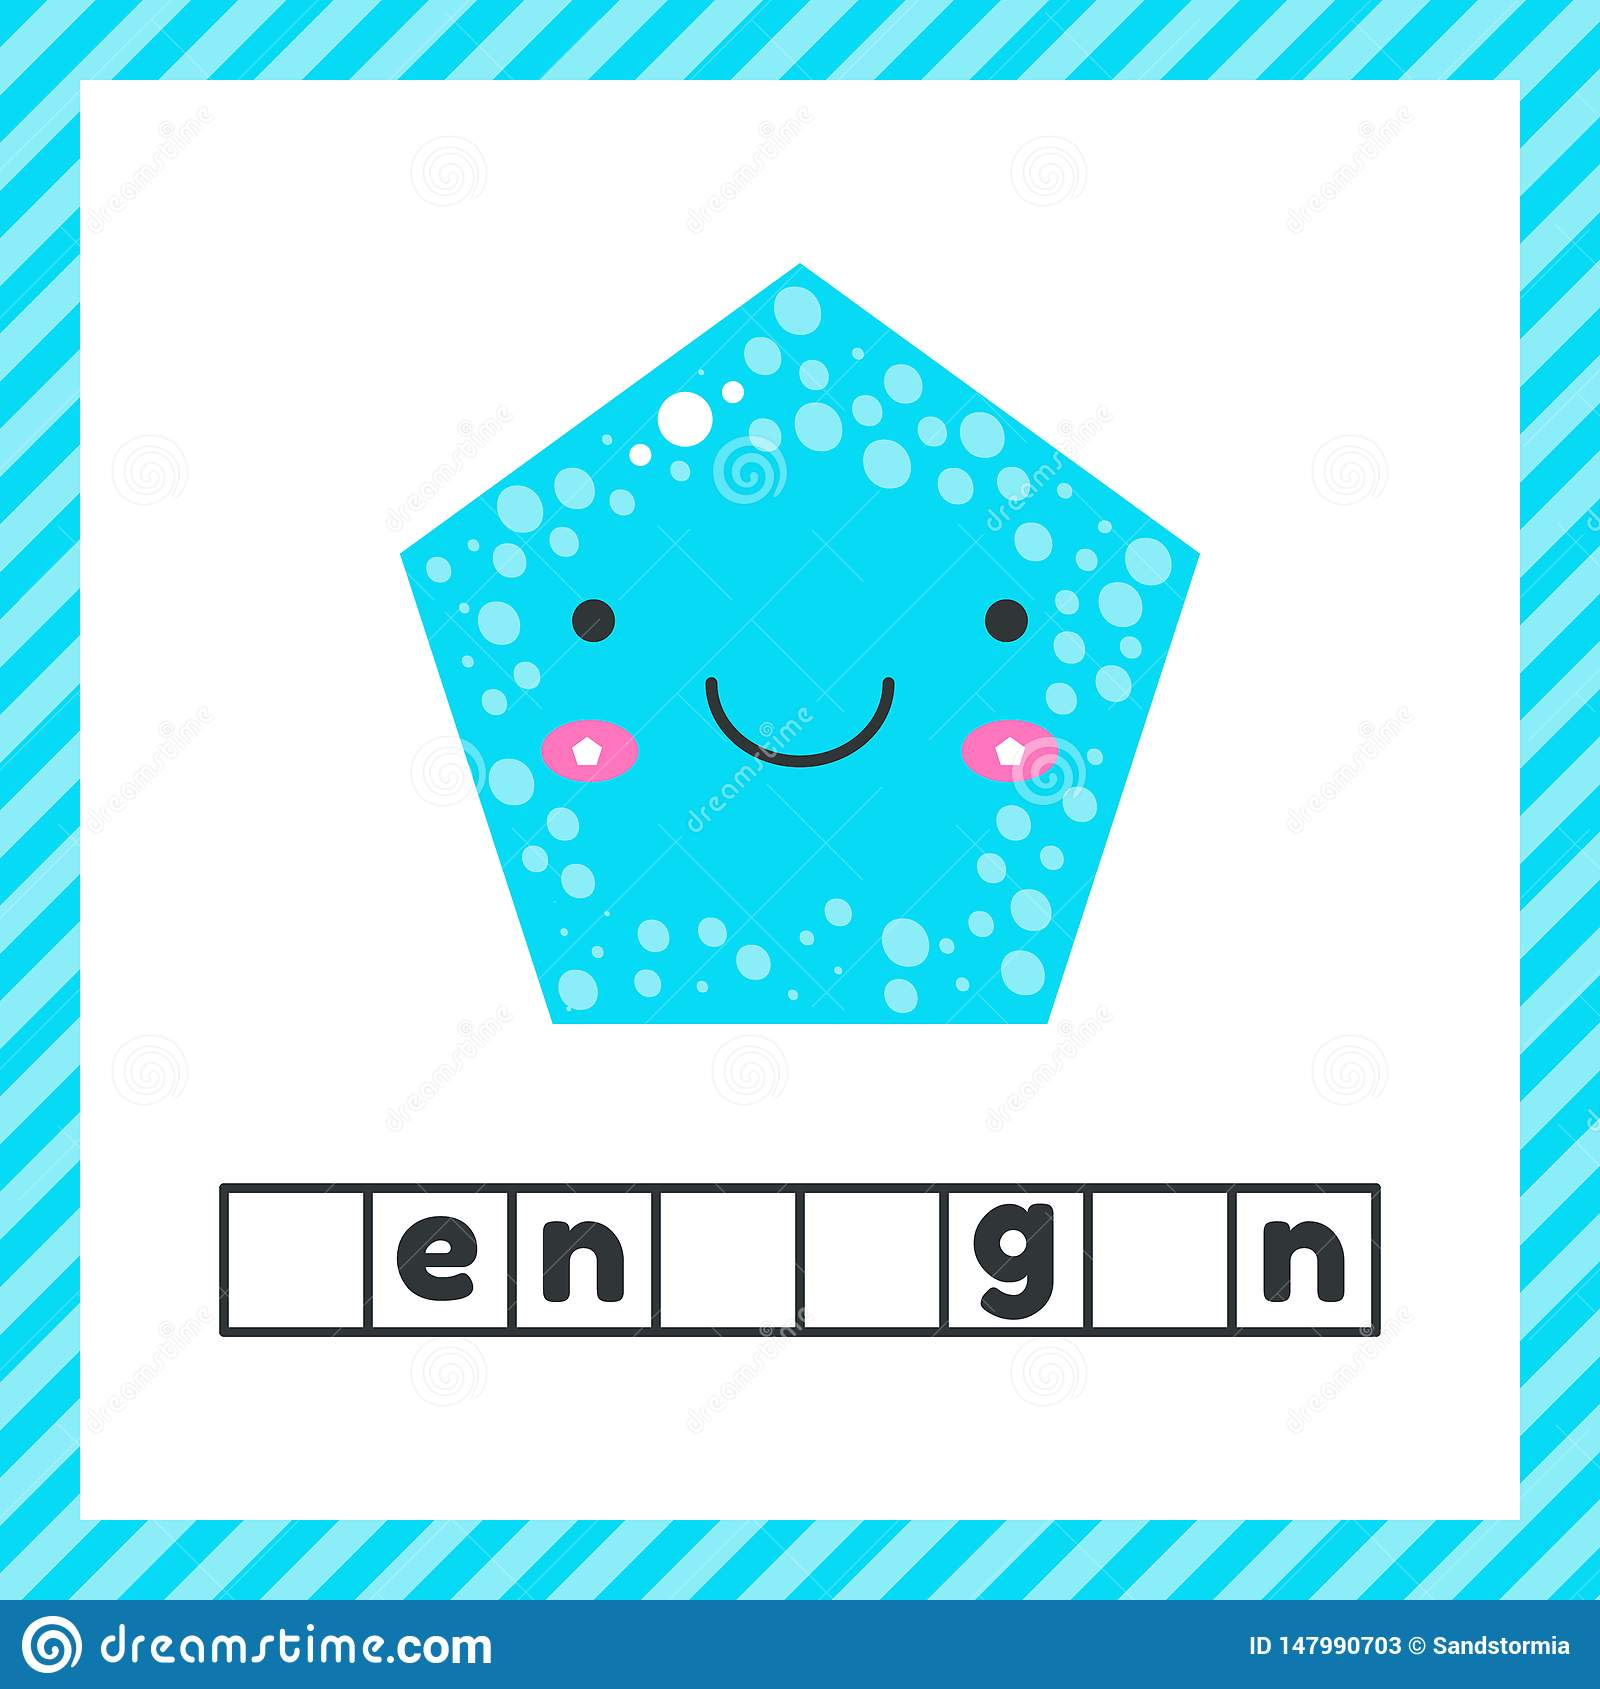 Cute Geometric Figures For Kids Blue Shape Pentagon